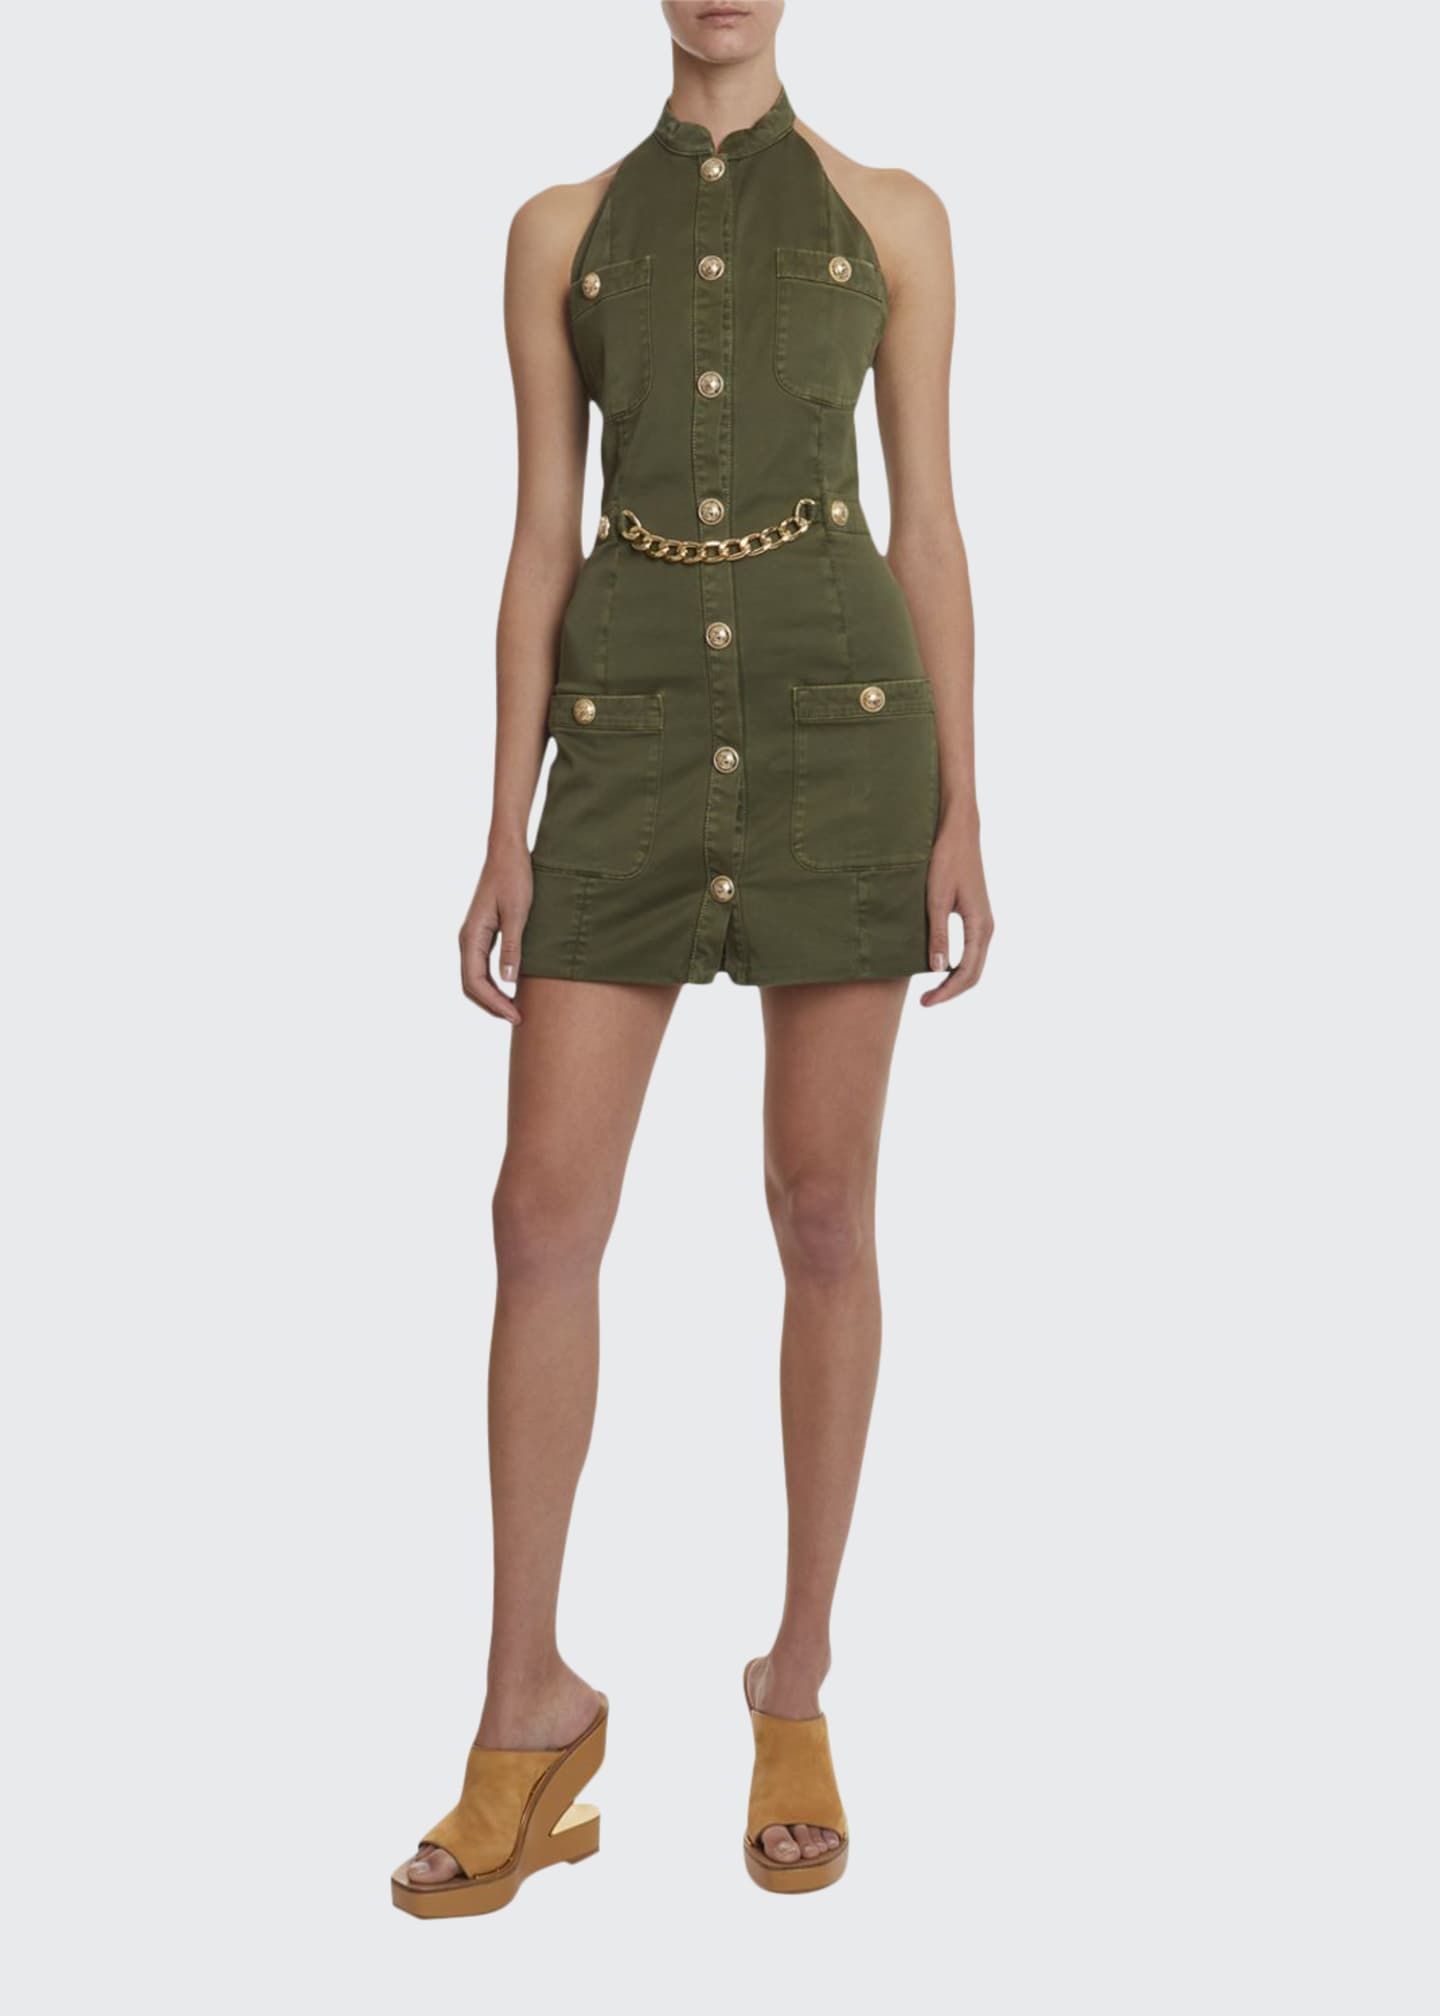 Balmain Golden-Chain Military Halter Dress